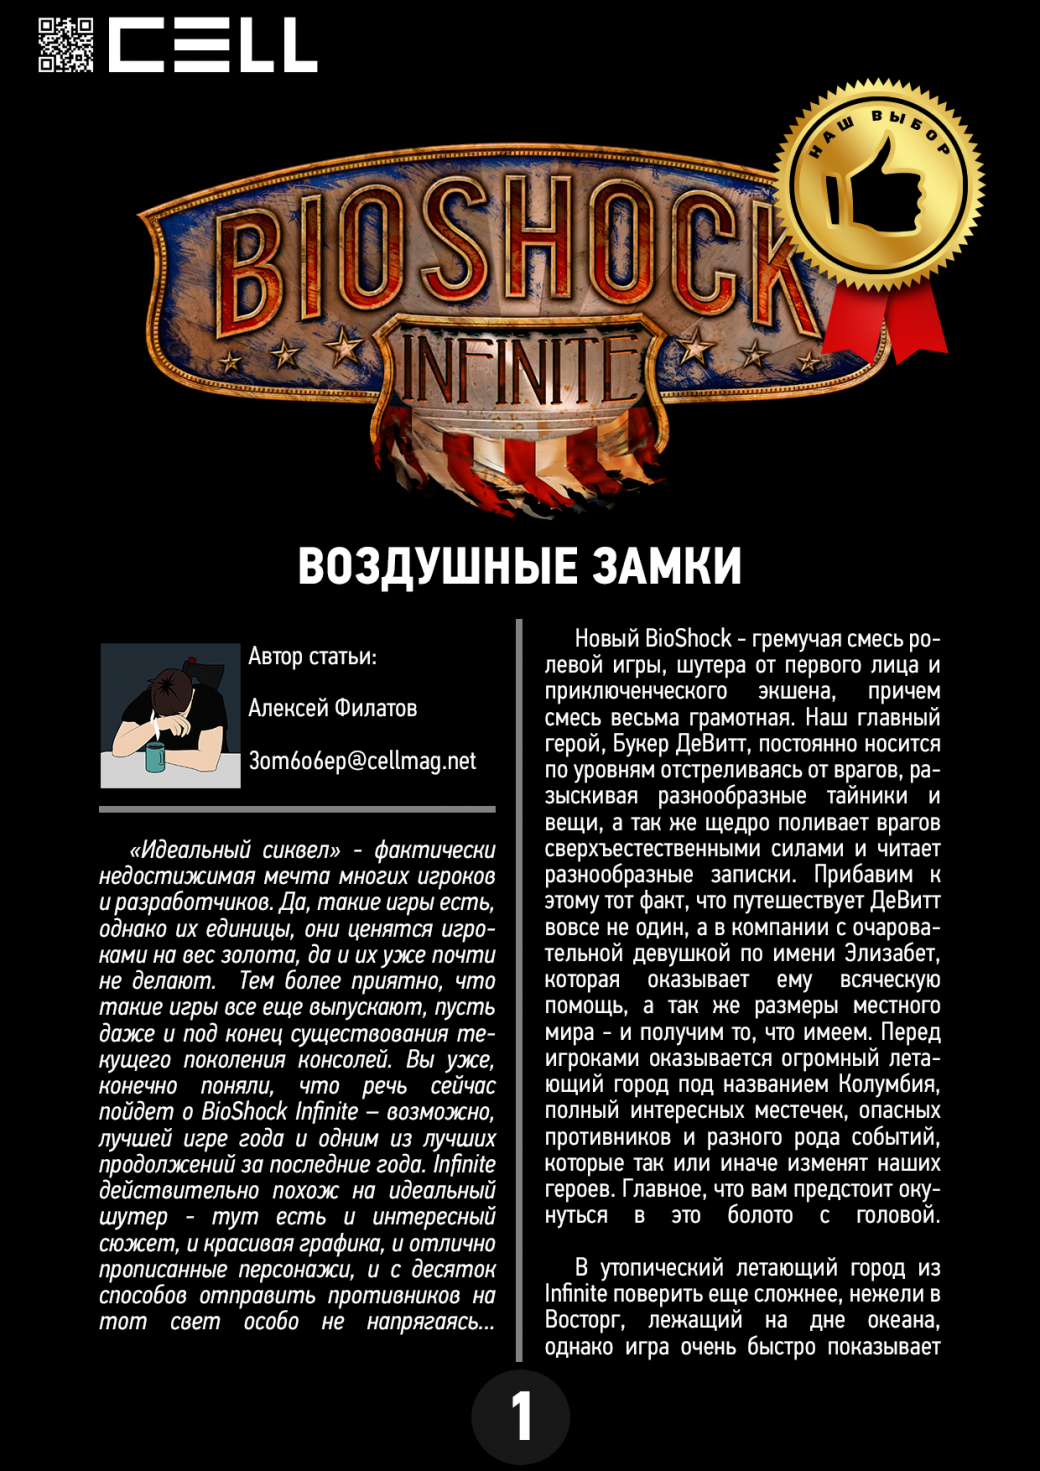 [SlowReviews] BioShock Infinite. Воздушная утопия | Канобу - Изображение 1